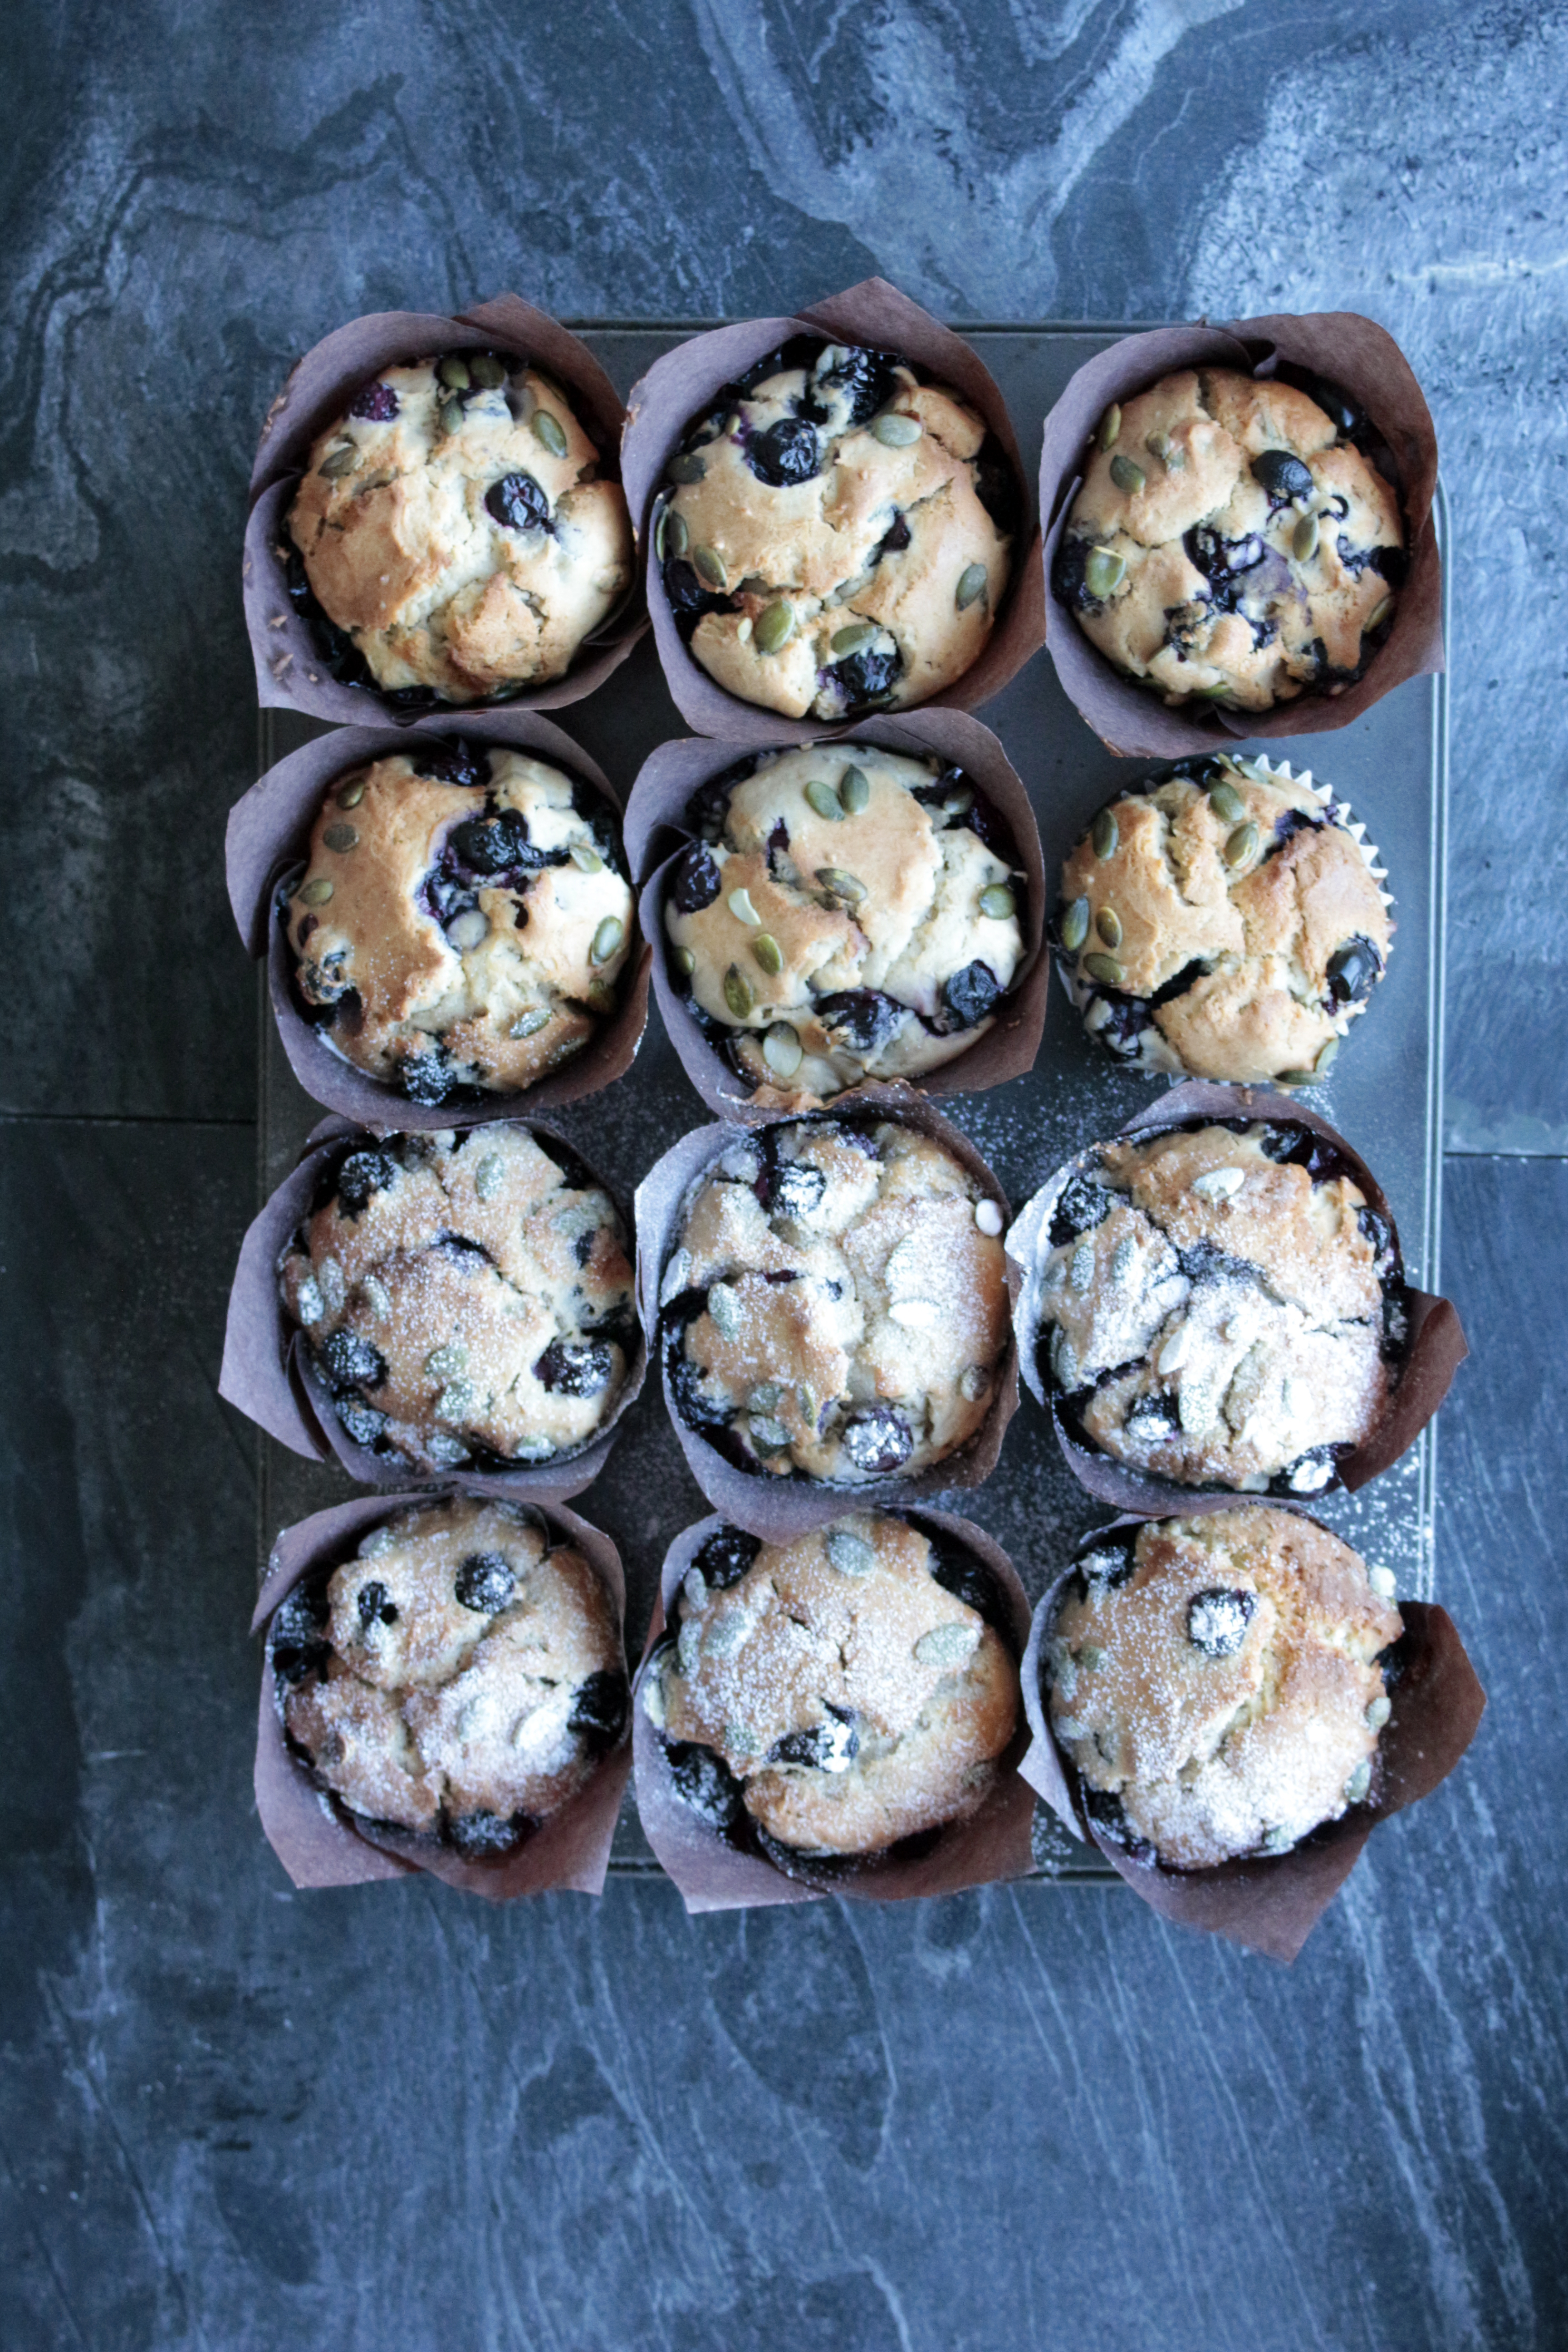 Recipe: Chestnut and Blueberry Muffins